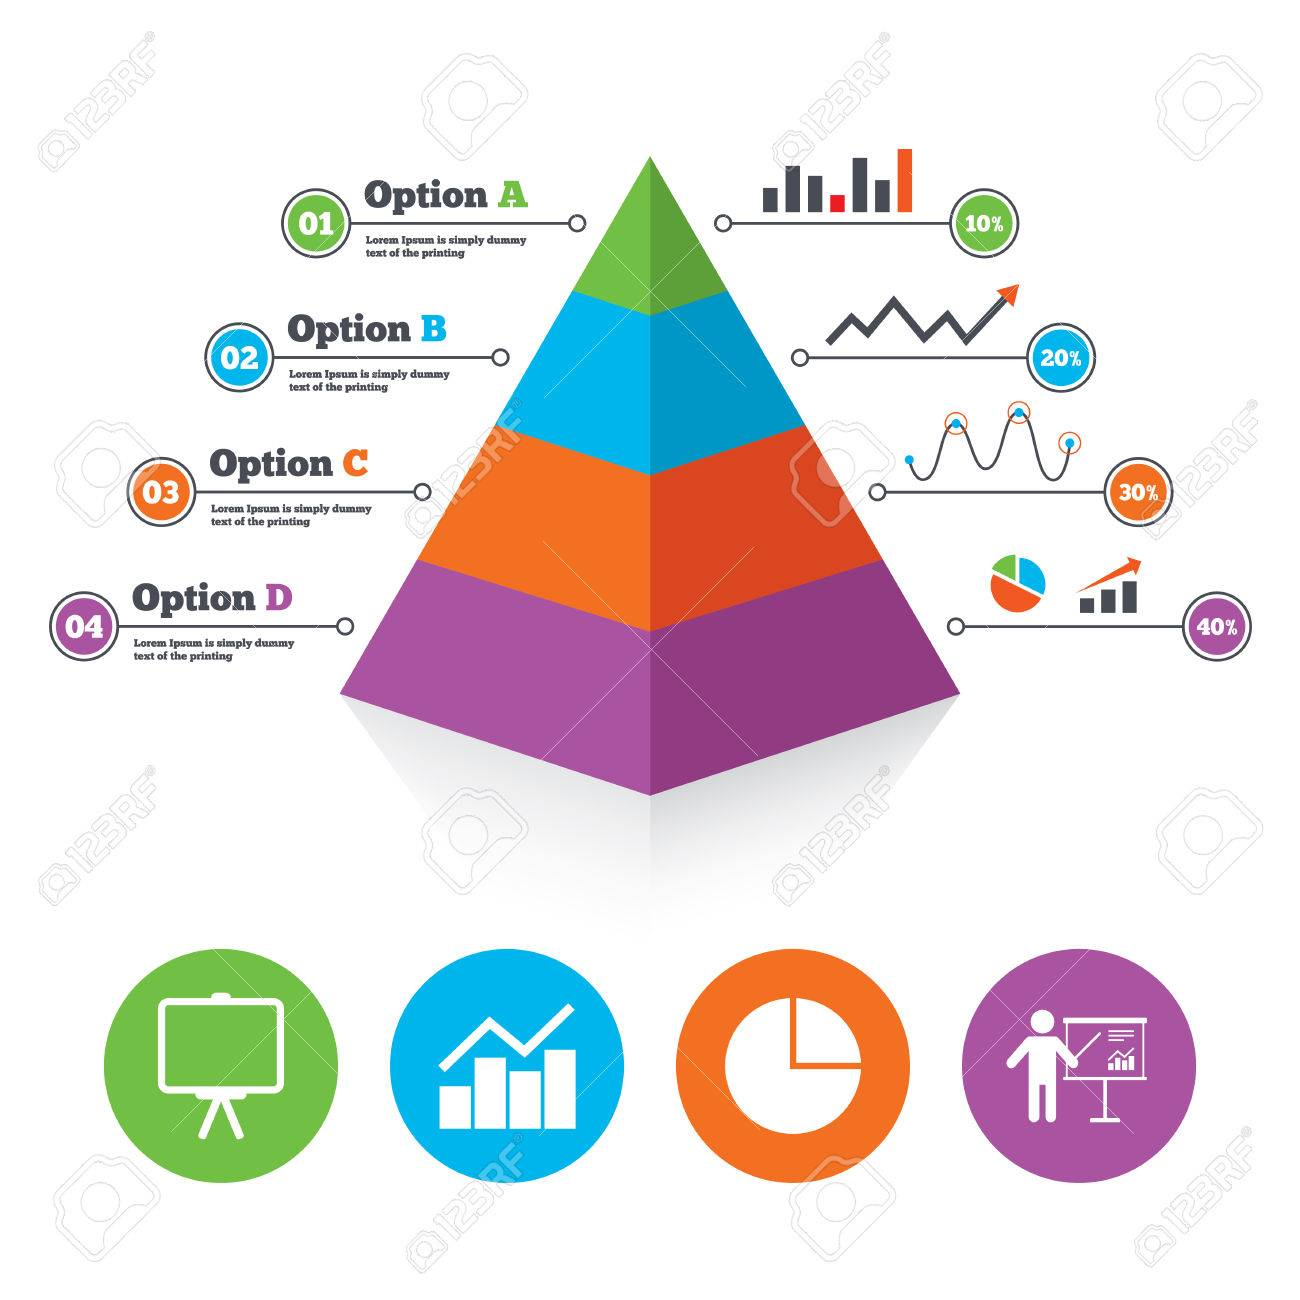 Pyramid chart template diagram graph pie chart icon presentation pyramid chart template diagram graph pie chart icon presentation billboard symbol man standing nvjuhfo Image collections